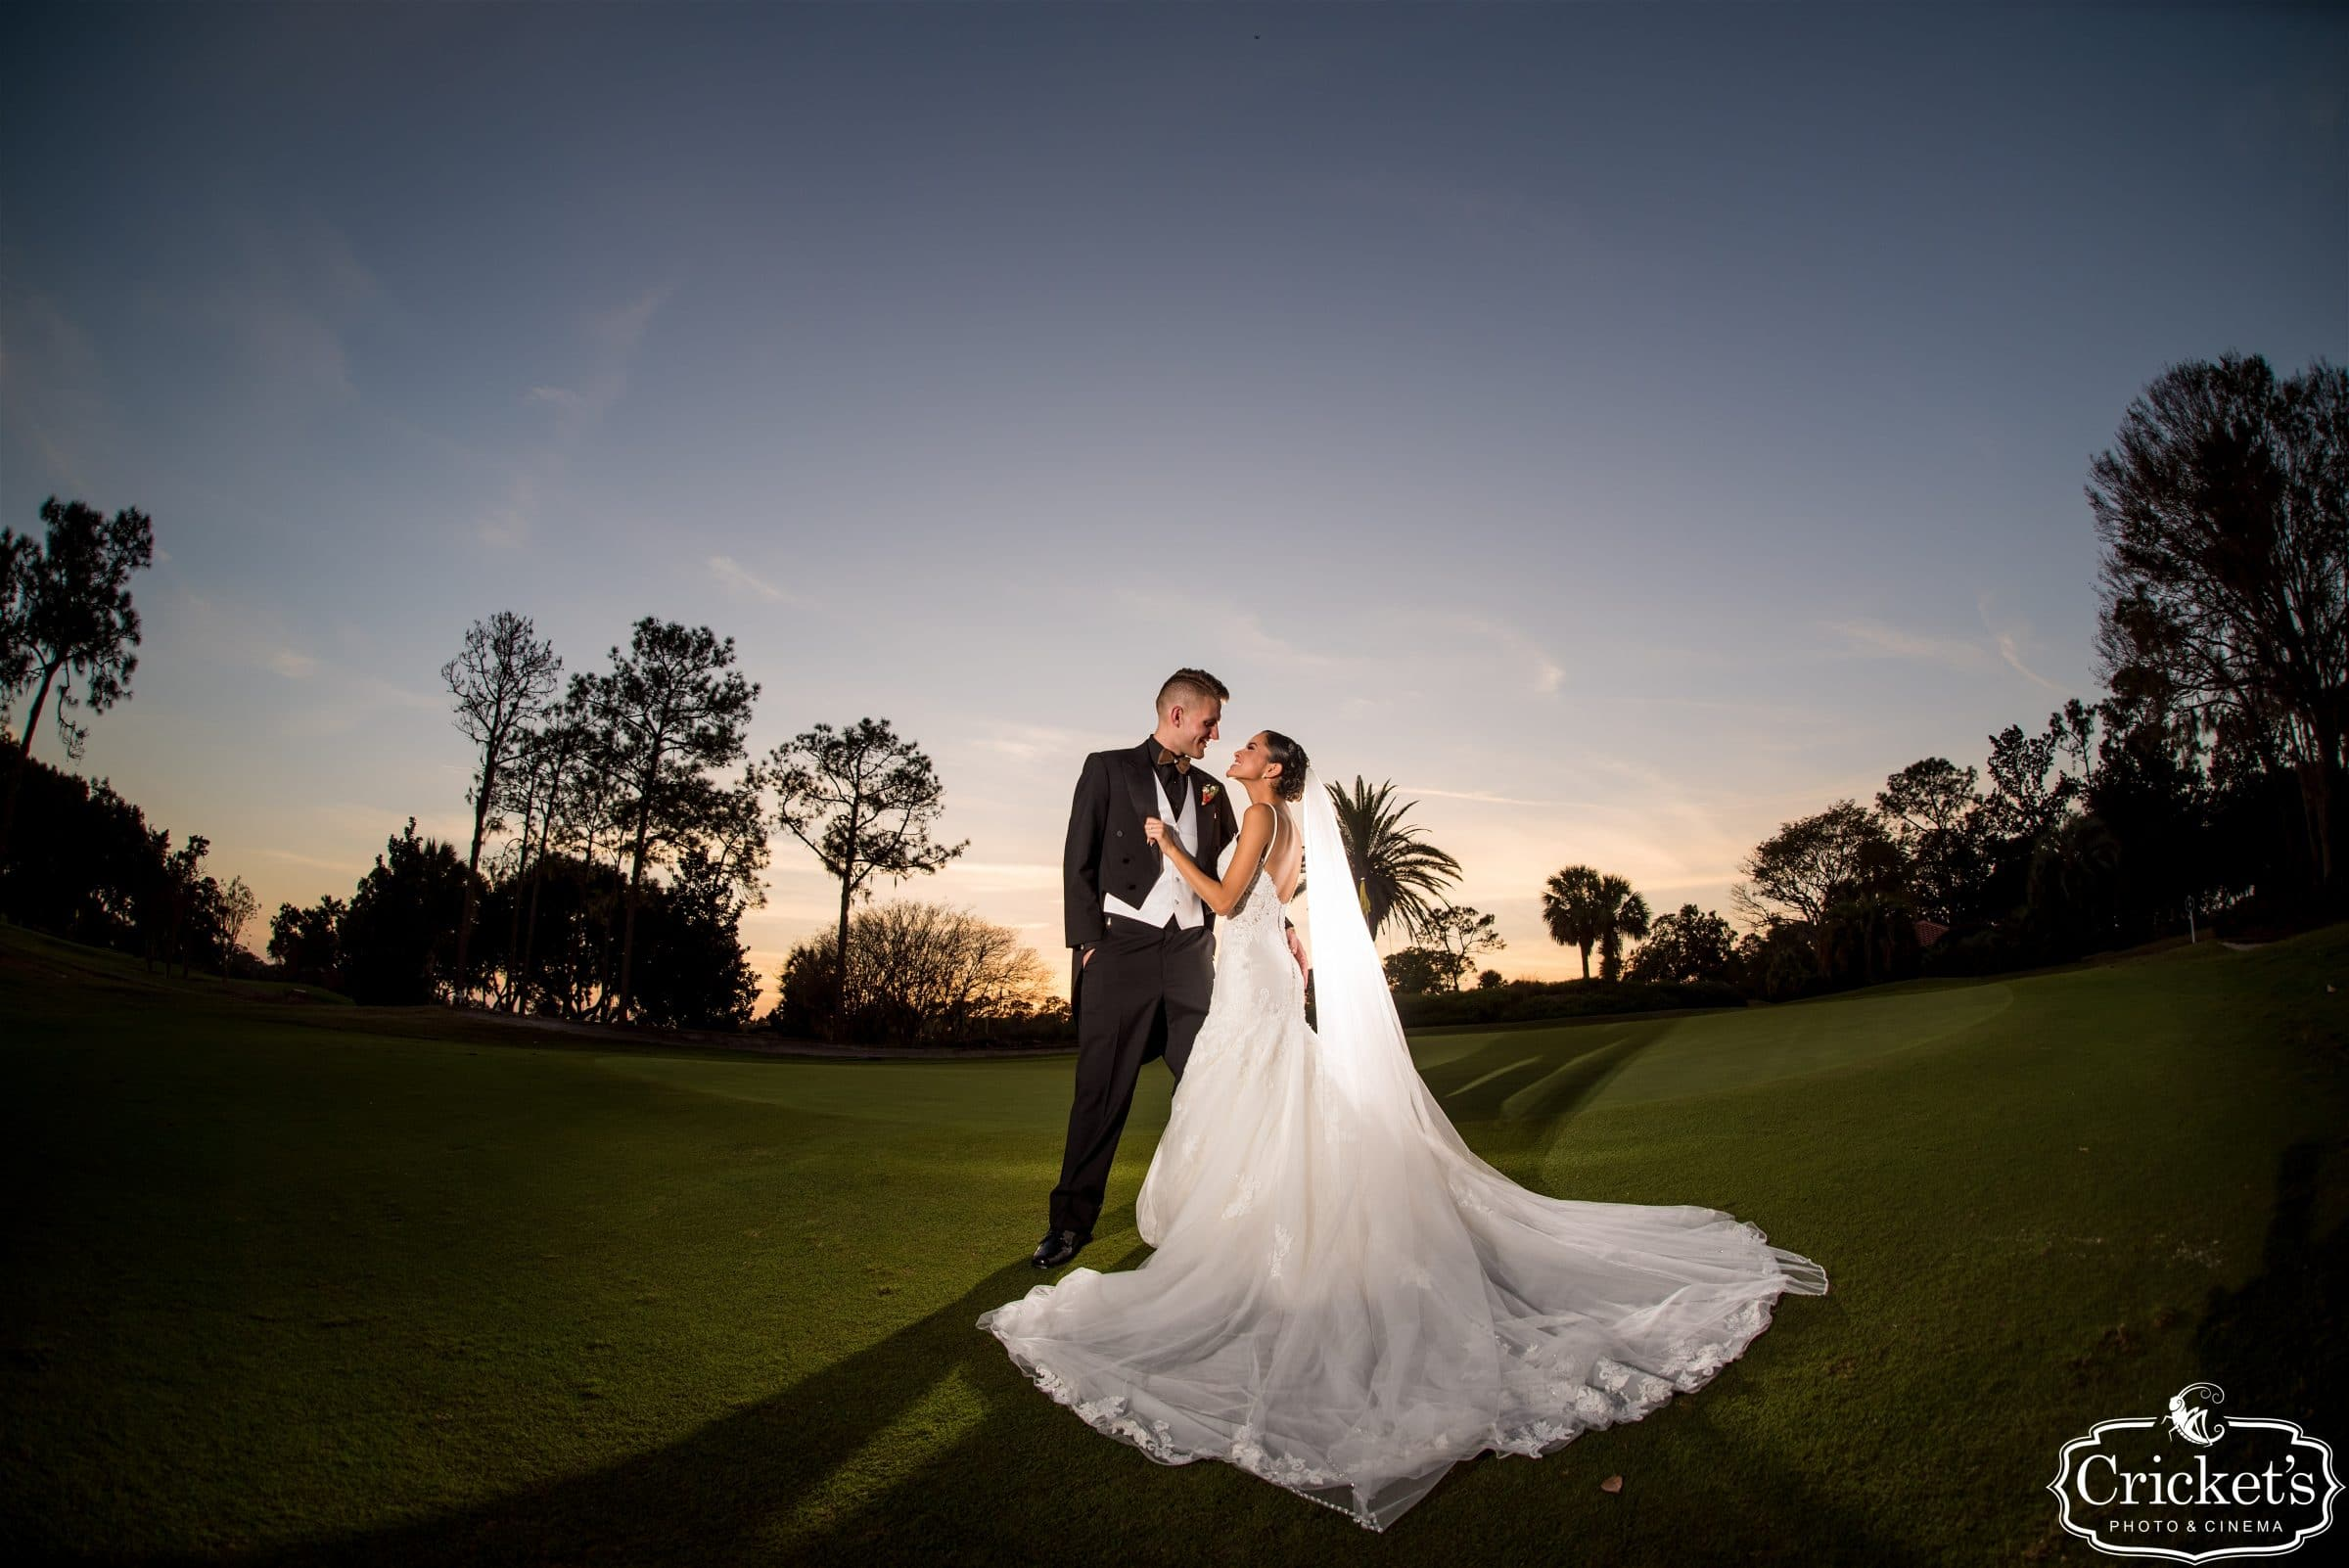 newlyweds on golf course